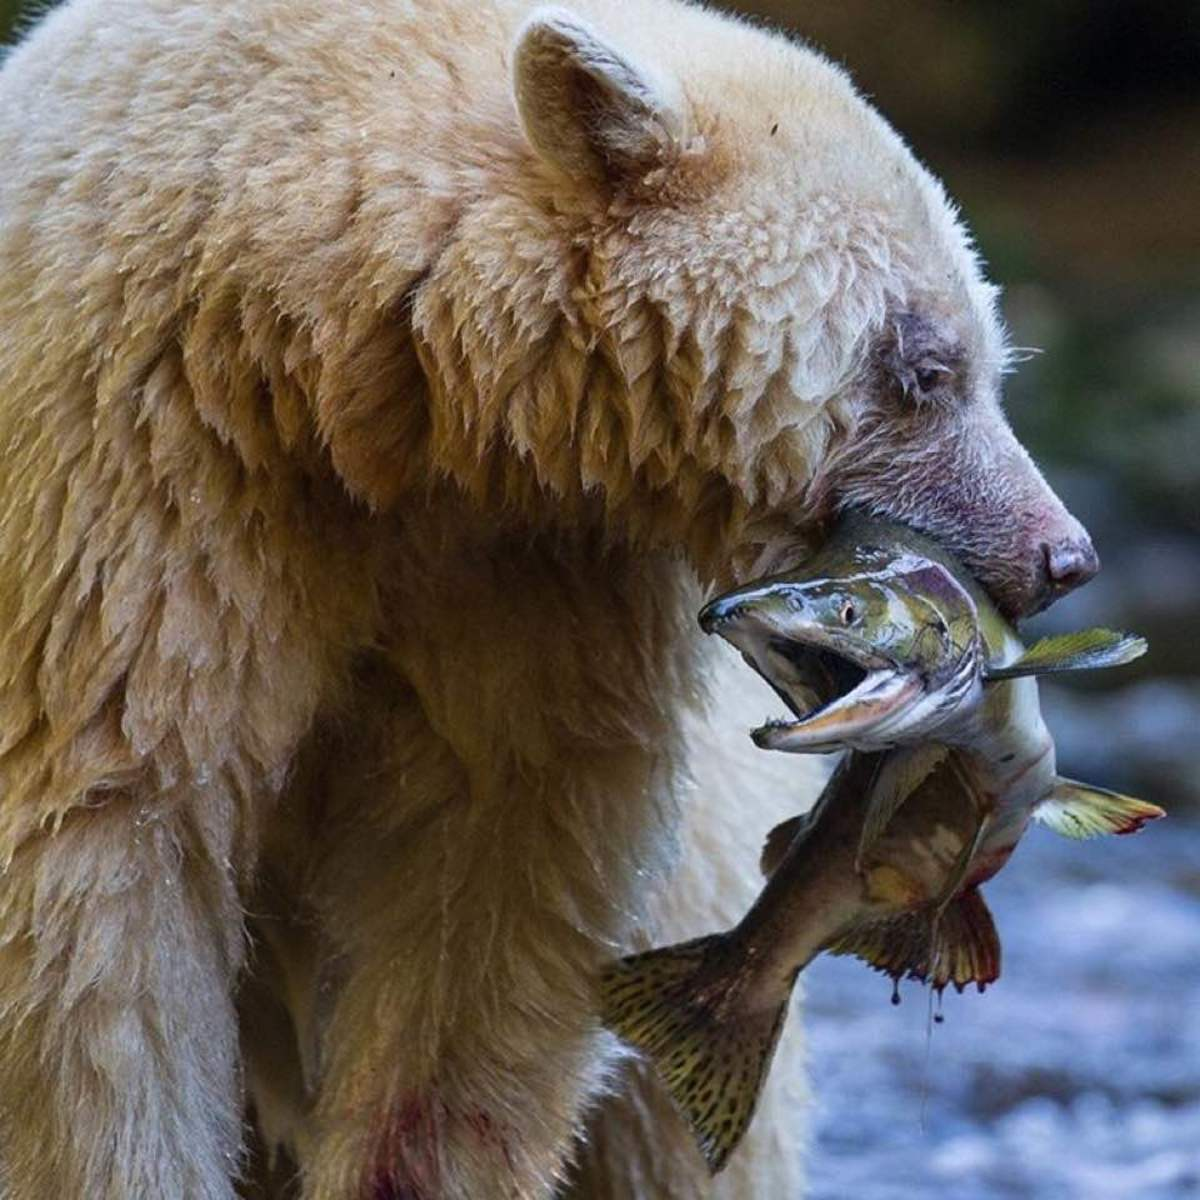 Grizzly bears love to eat fish, and the more protein in one's diet, the larger it can grow.